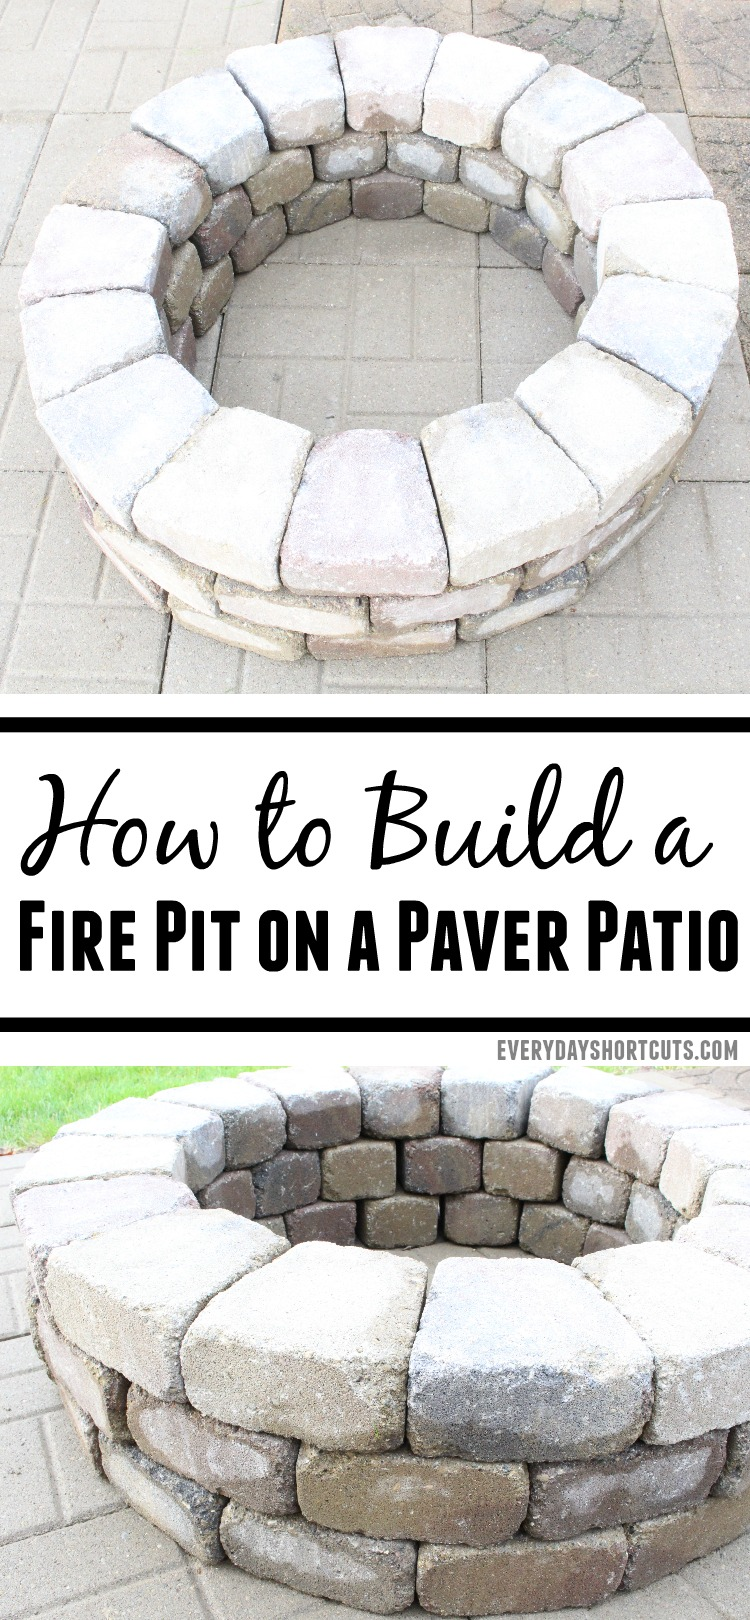 how-to-build-a-fire-pit-on-a-paver-patio